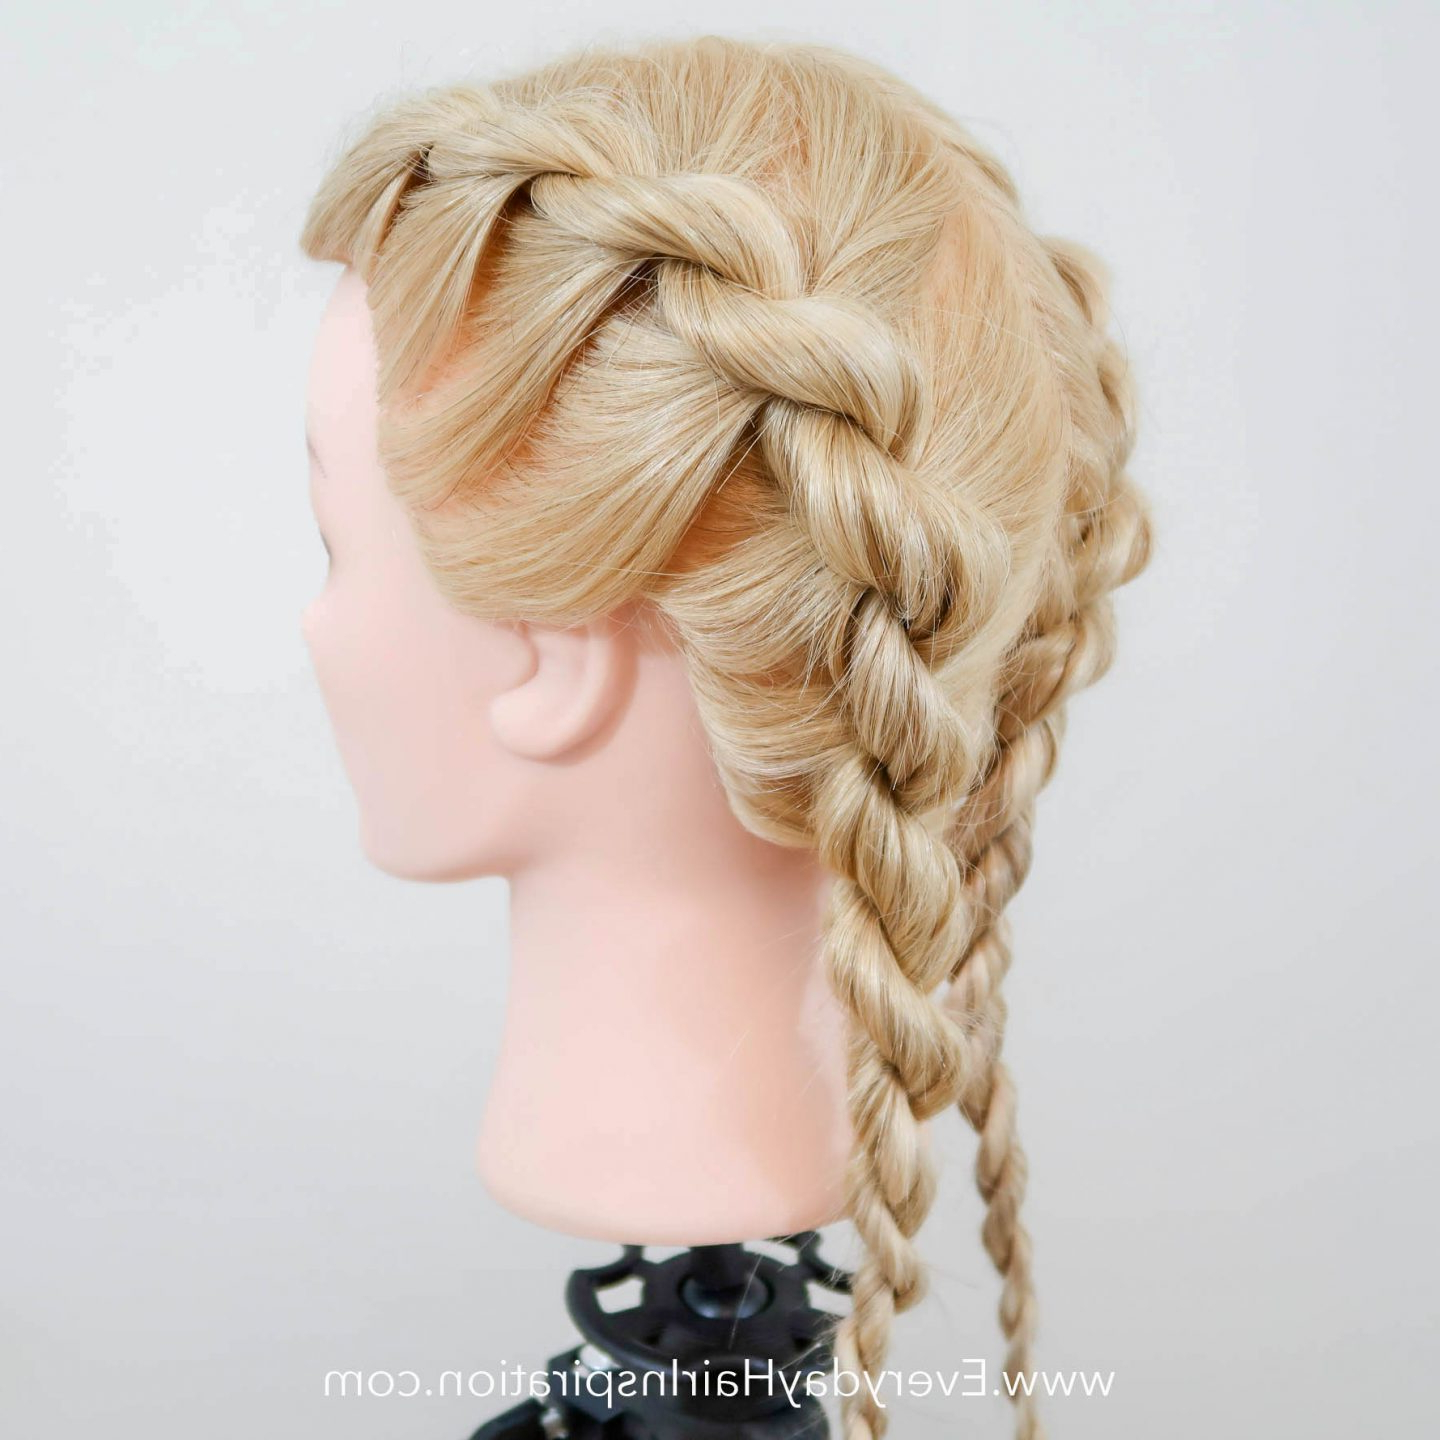 French Rope Braid Stepstep – Everyday Hair Inspiration Within Best And Newest Easy French Rope Braid Hairstyles (View 3 of 20)